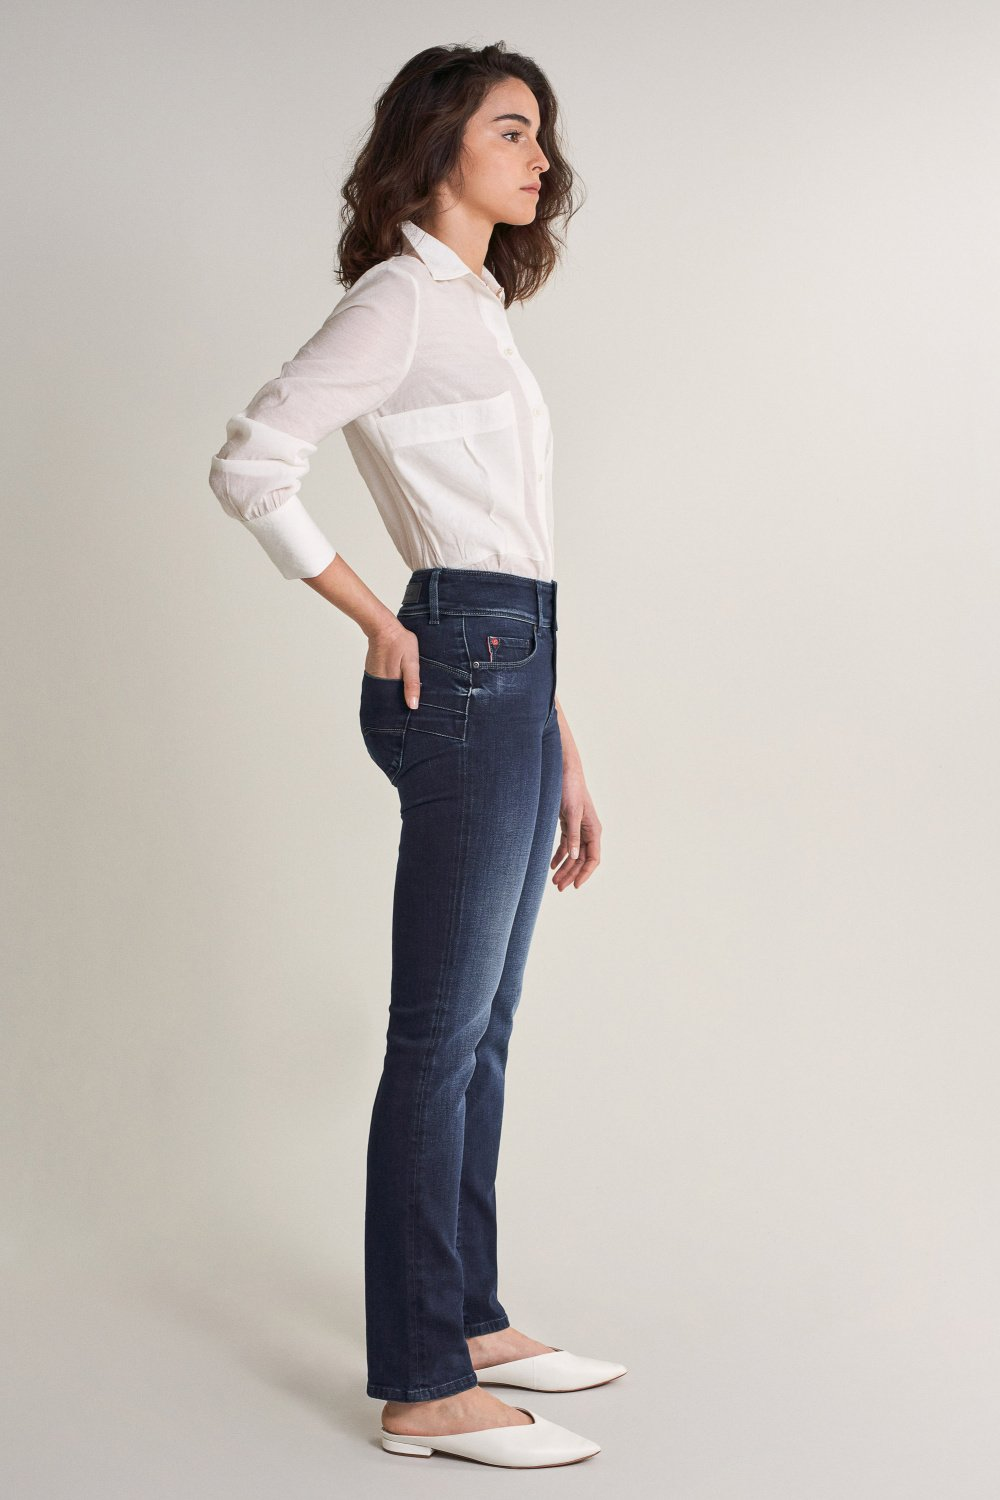 Push In Secret slim dark jeans - Salsa